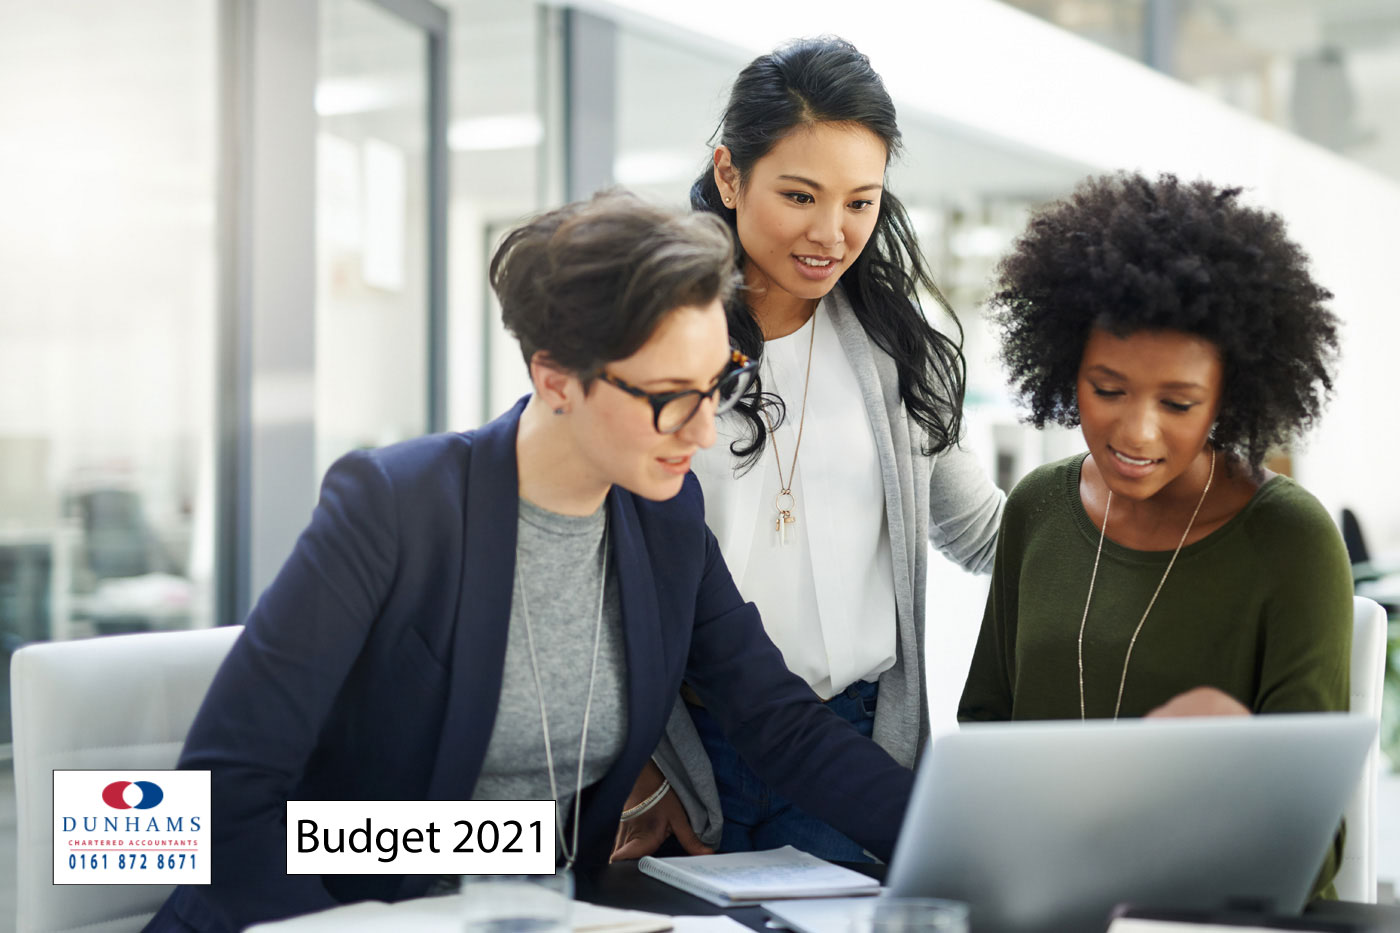 Dunhams Budget Review 2021 - Business Overview.